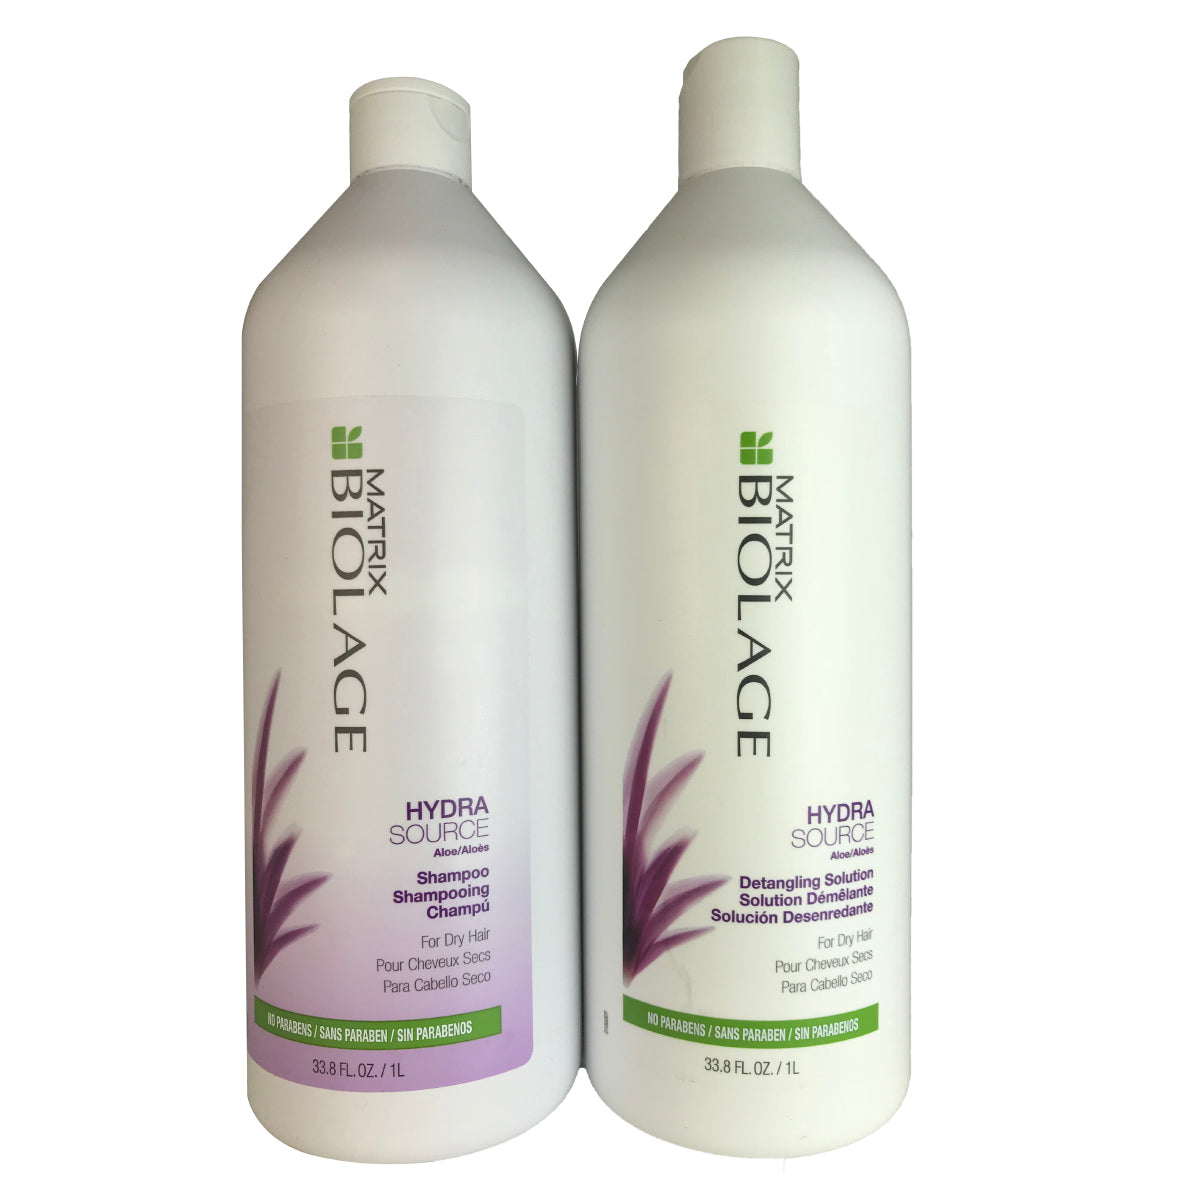 Matrix Biolage Hydrasource Hair Shampoo & Detangling Solution Duo 1 Liter Each